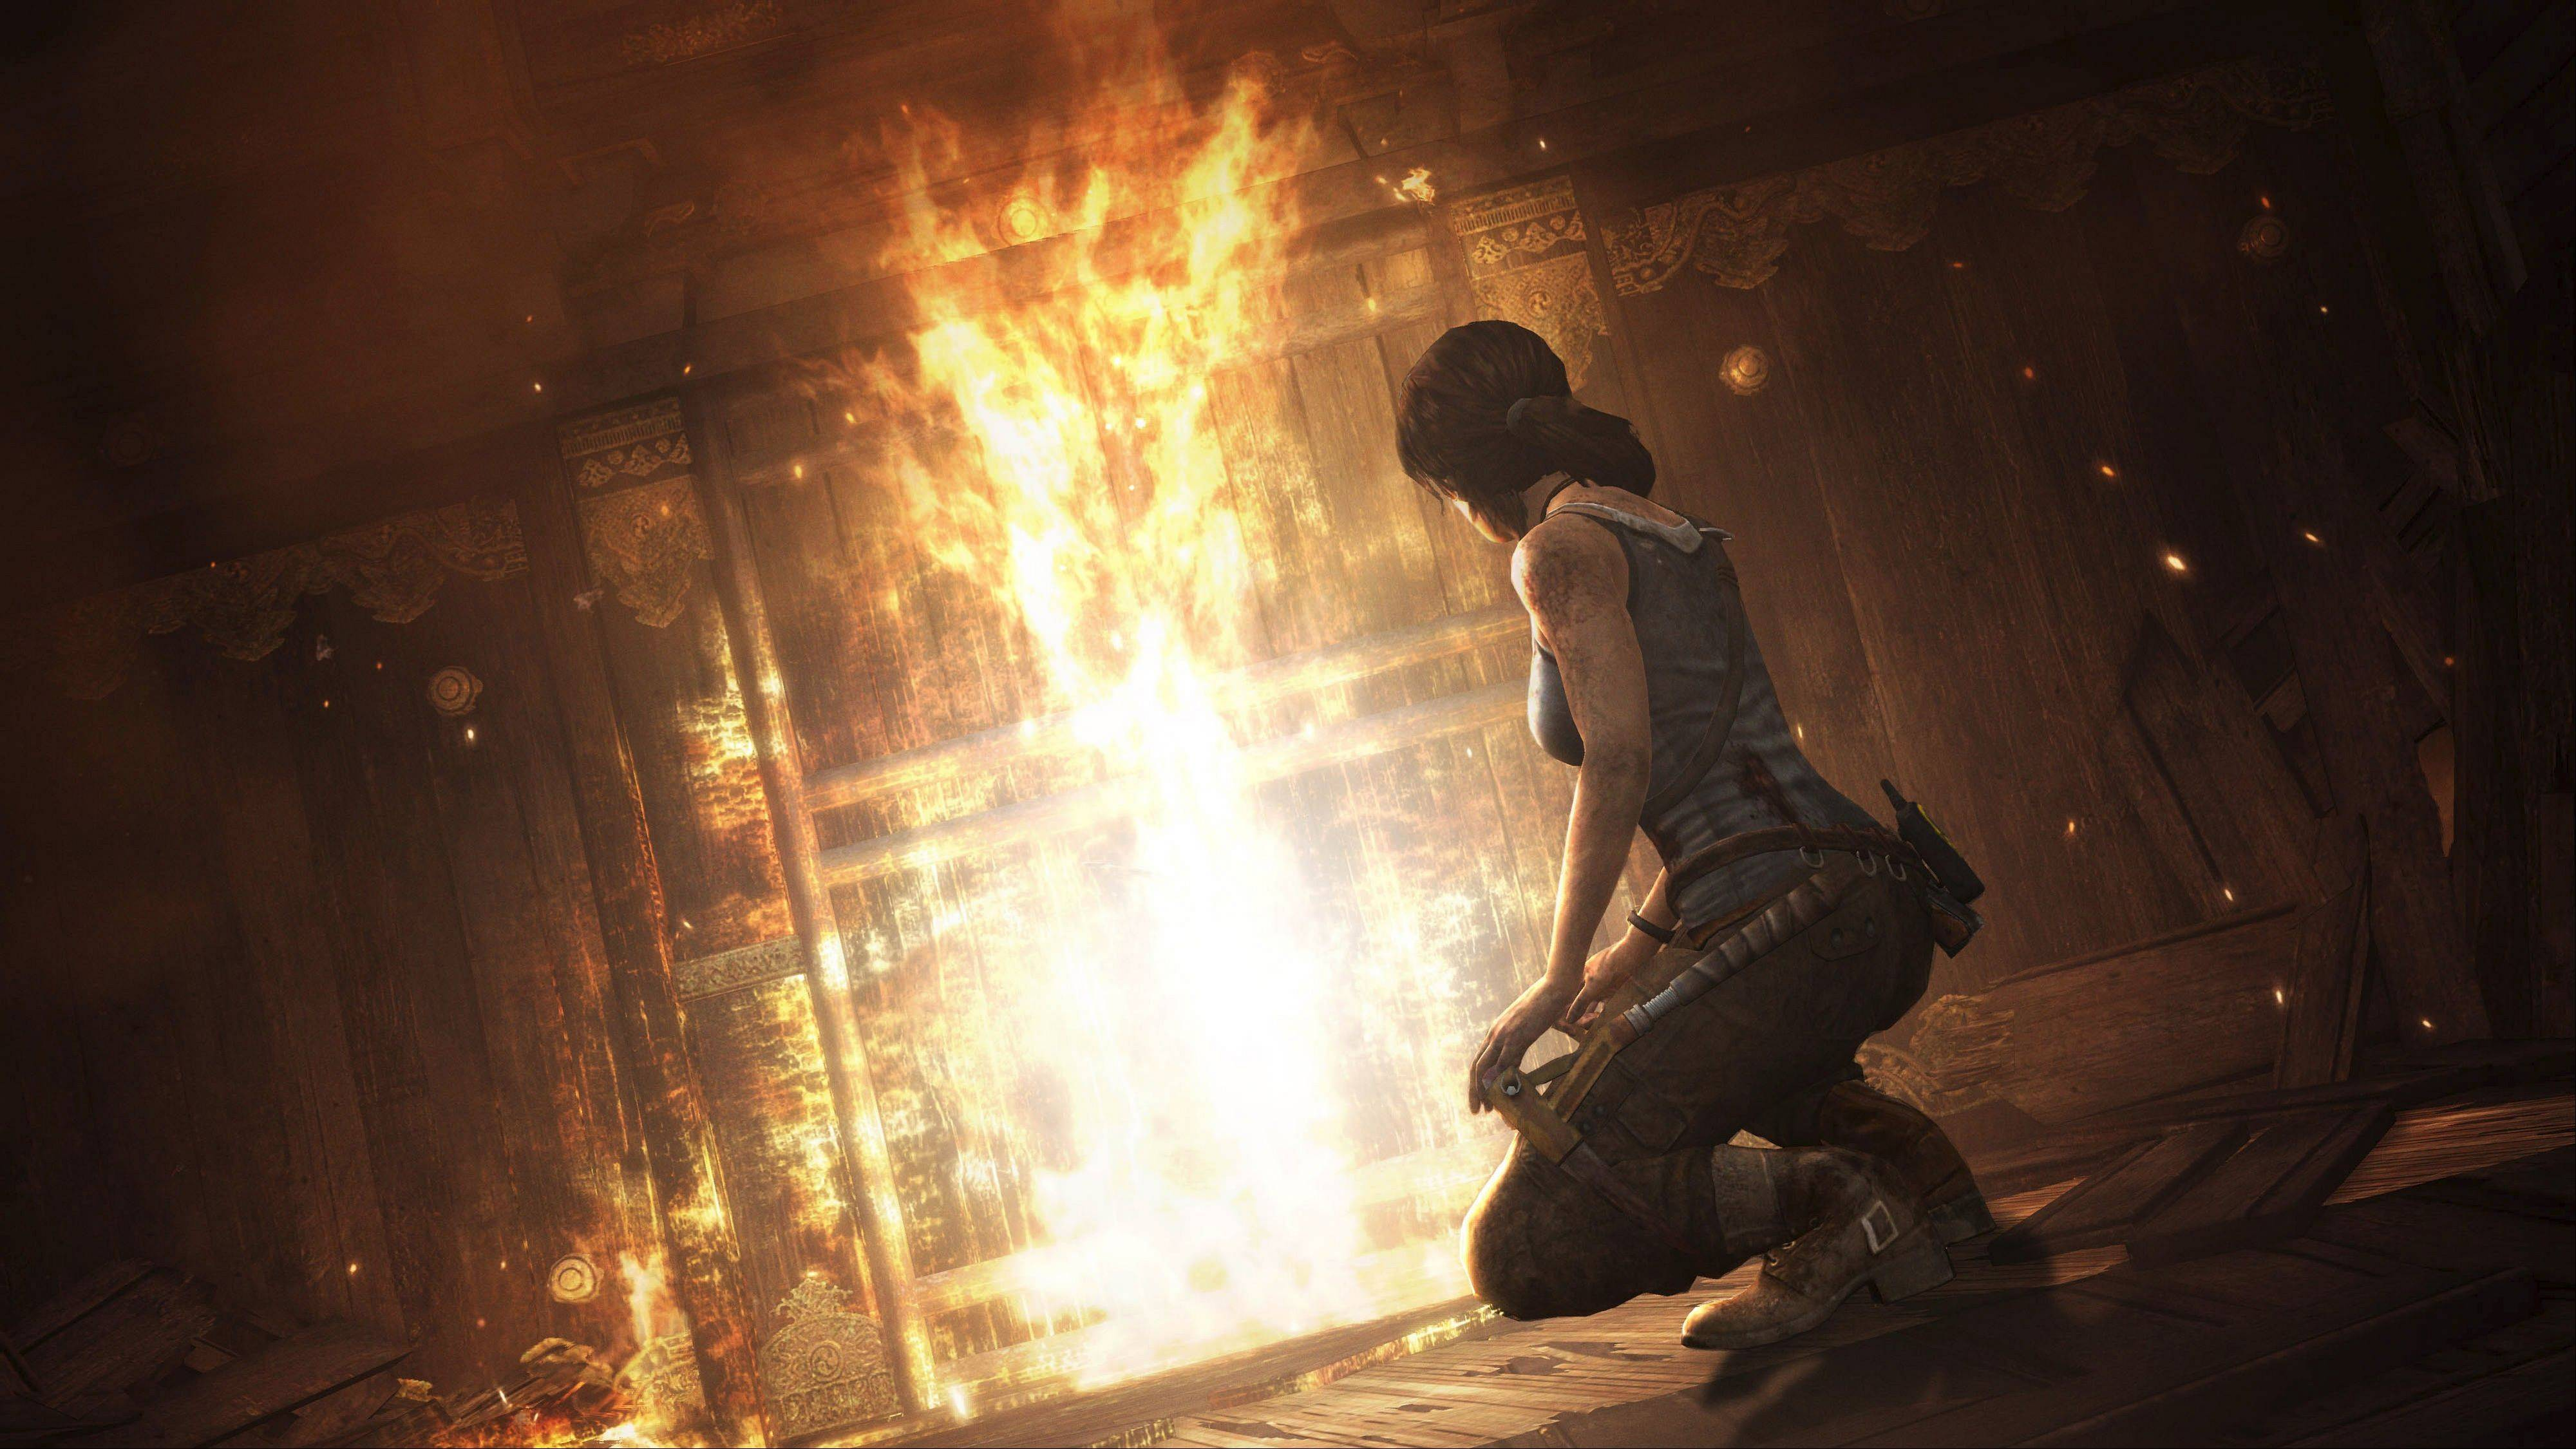 """Tomb Raider"" finds an inexperienced young Lara Croft shipwrecked and separated from her crew on a mysterious island in Japan's brutal Devil's Triangle."